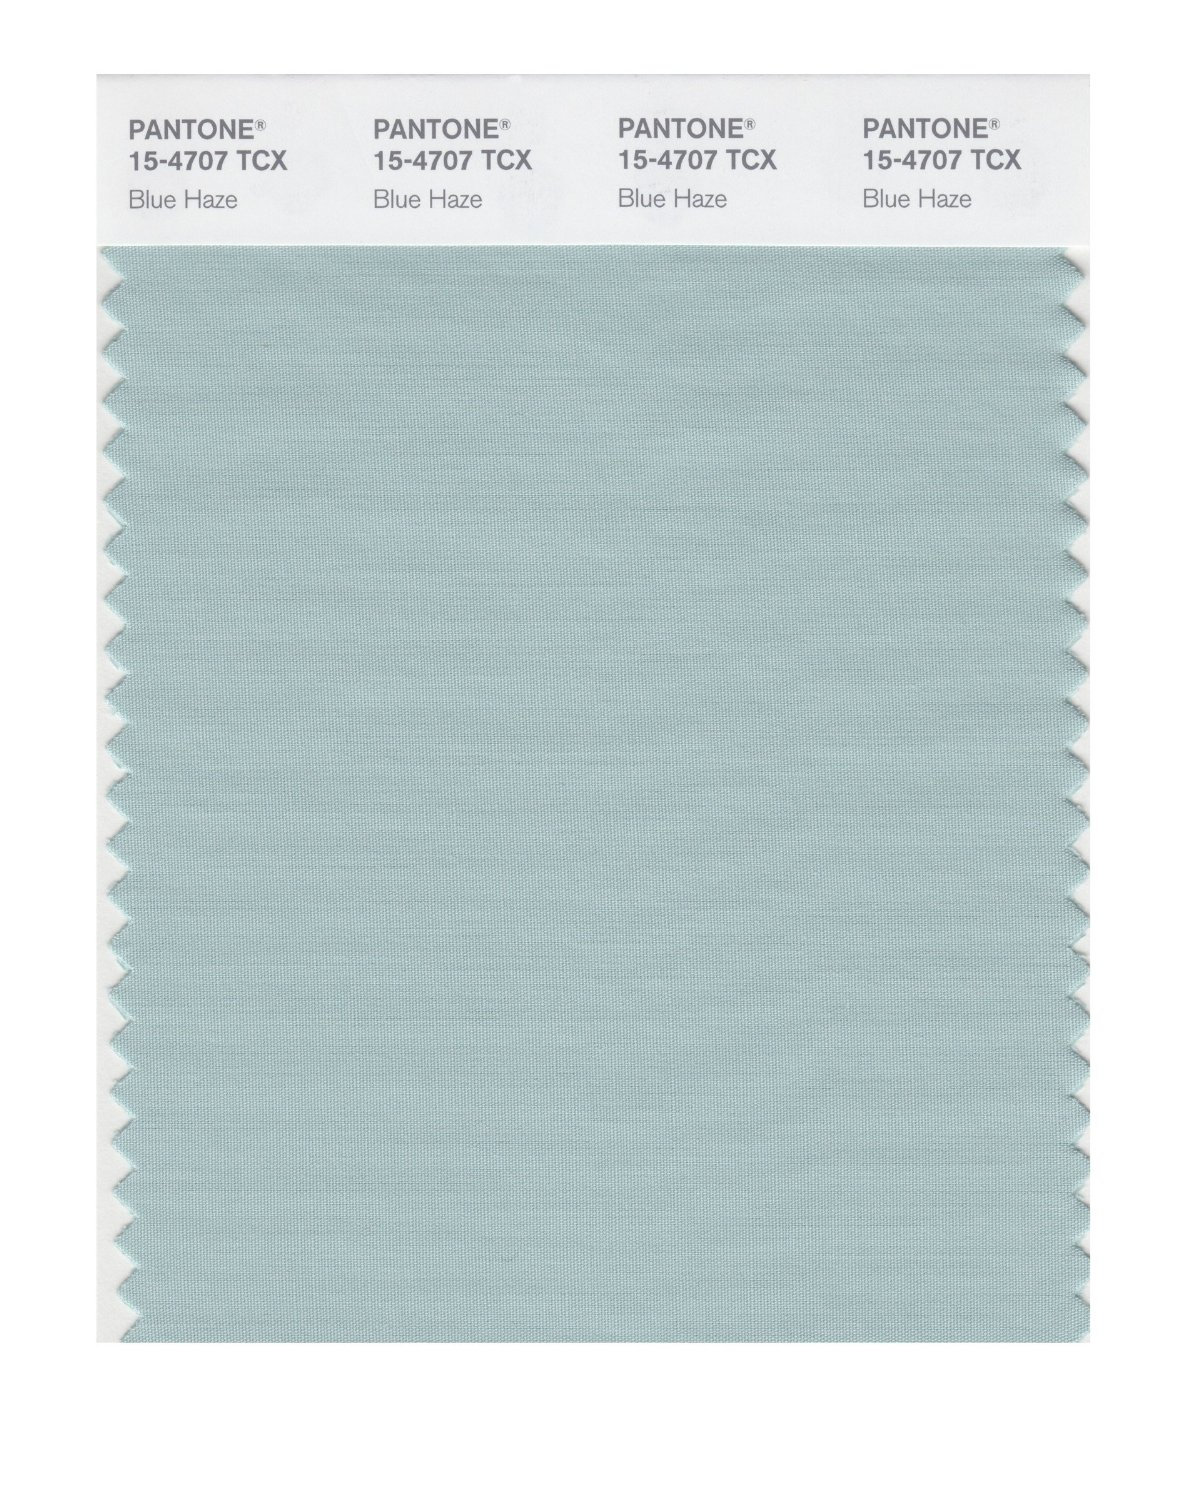 Pantone Smart Swatch 15-4707 Blue Haze